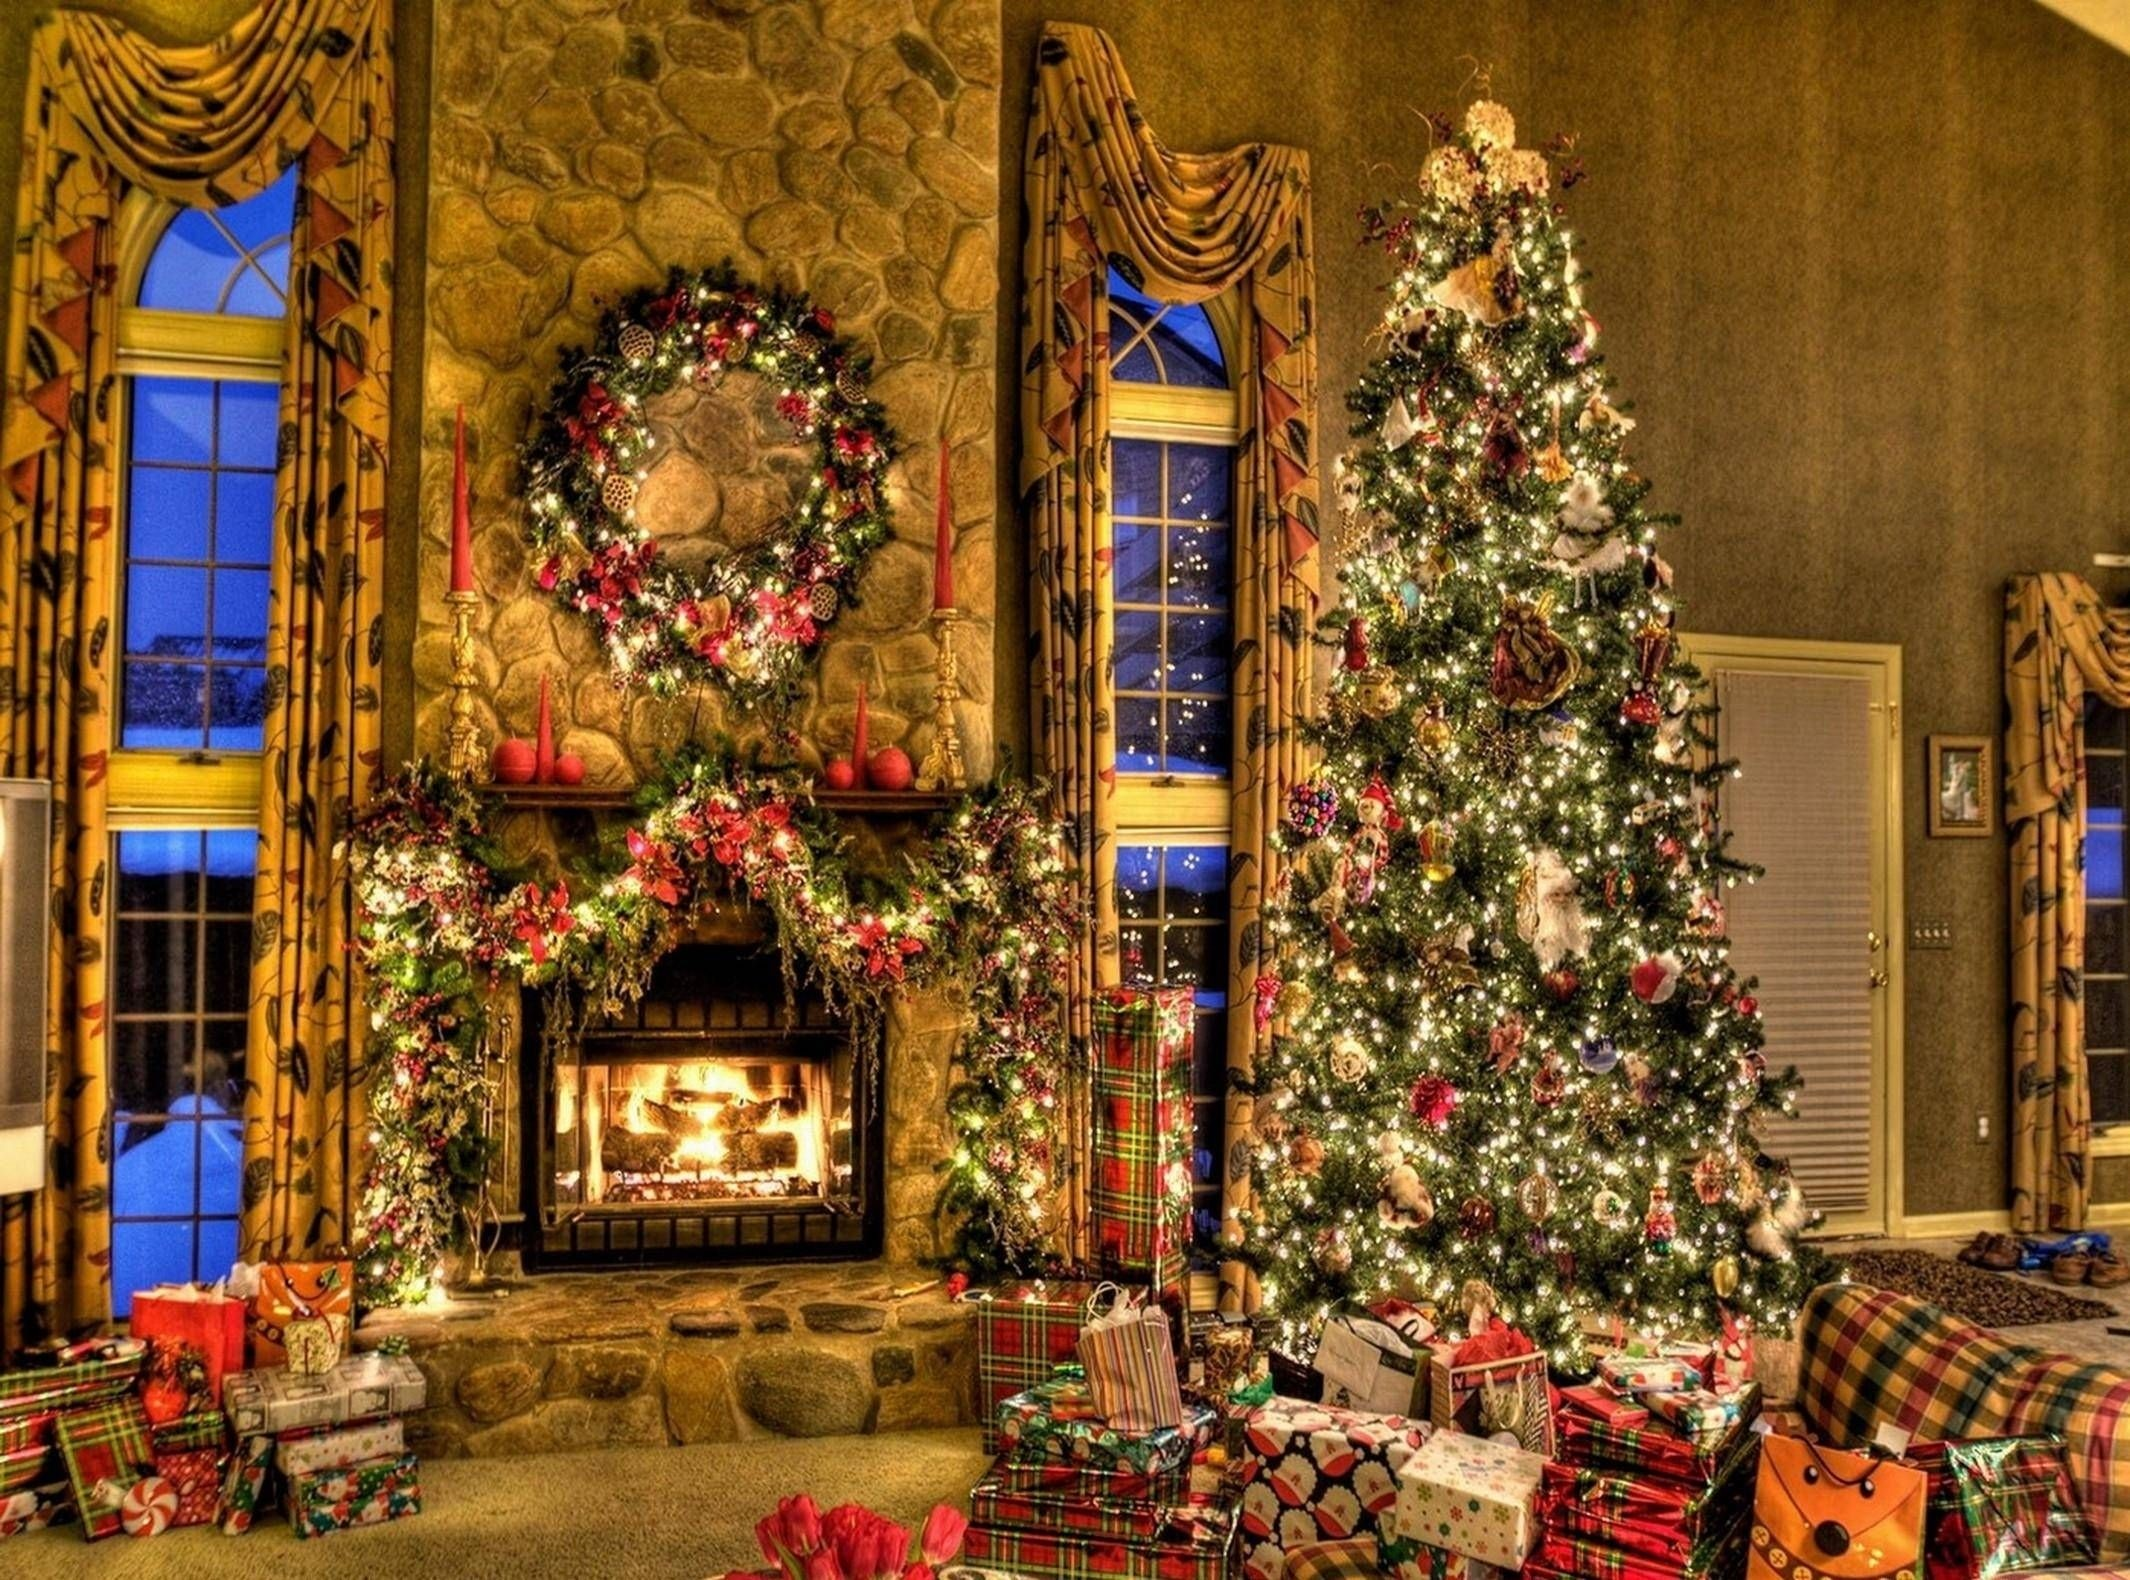 Res: 2130x1580, Free Christmas Fireplace Wallpapers Wallpaper Cave